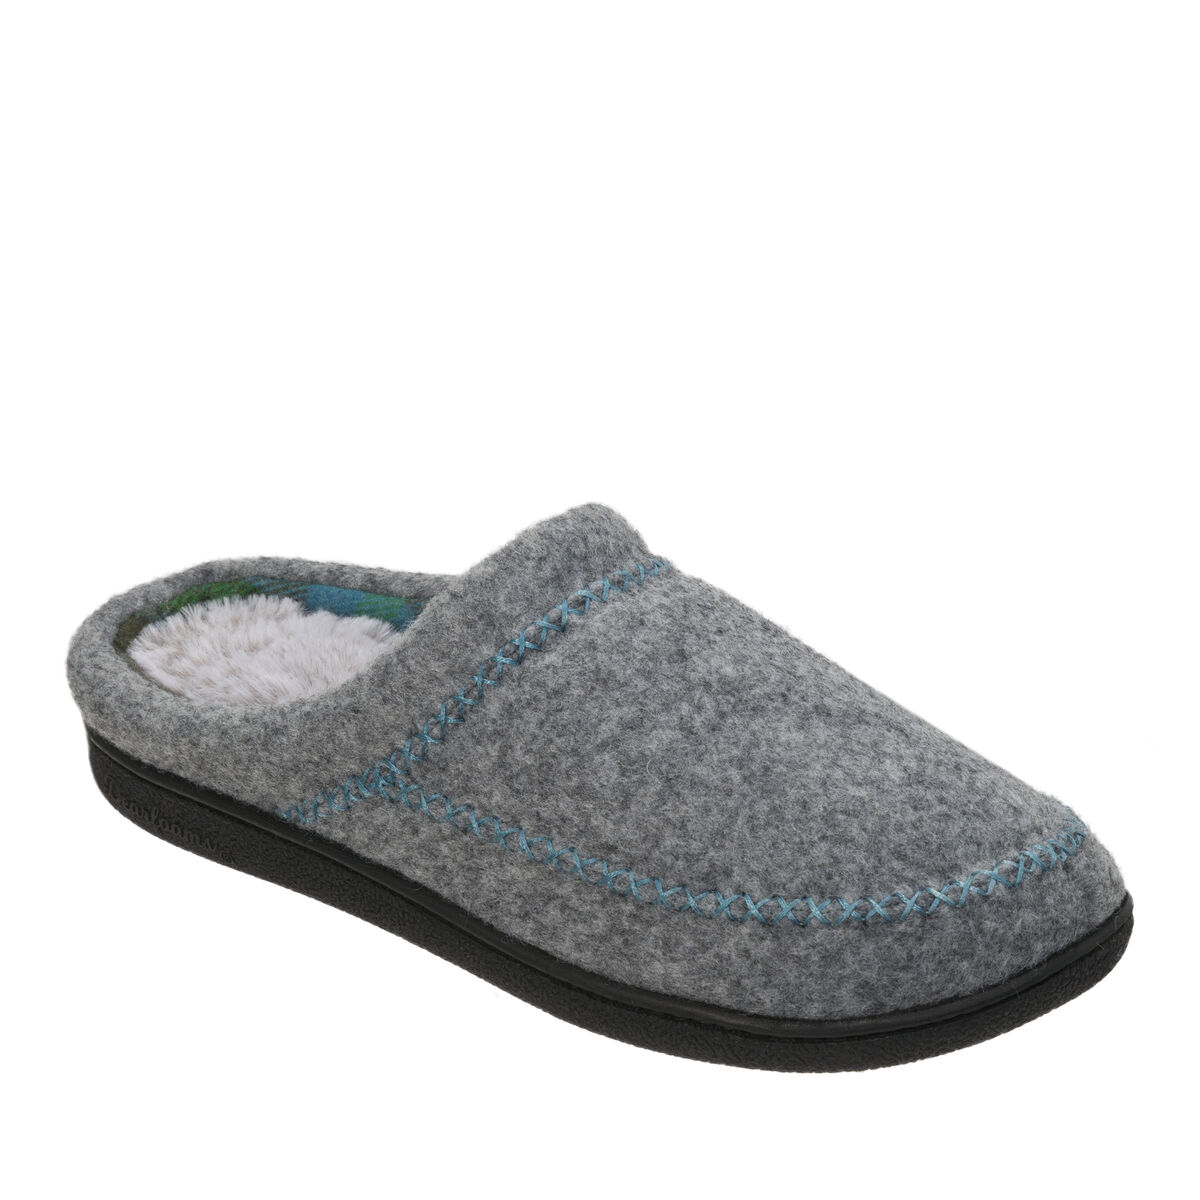 Women's Felted X-Stitch Clog Slipper